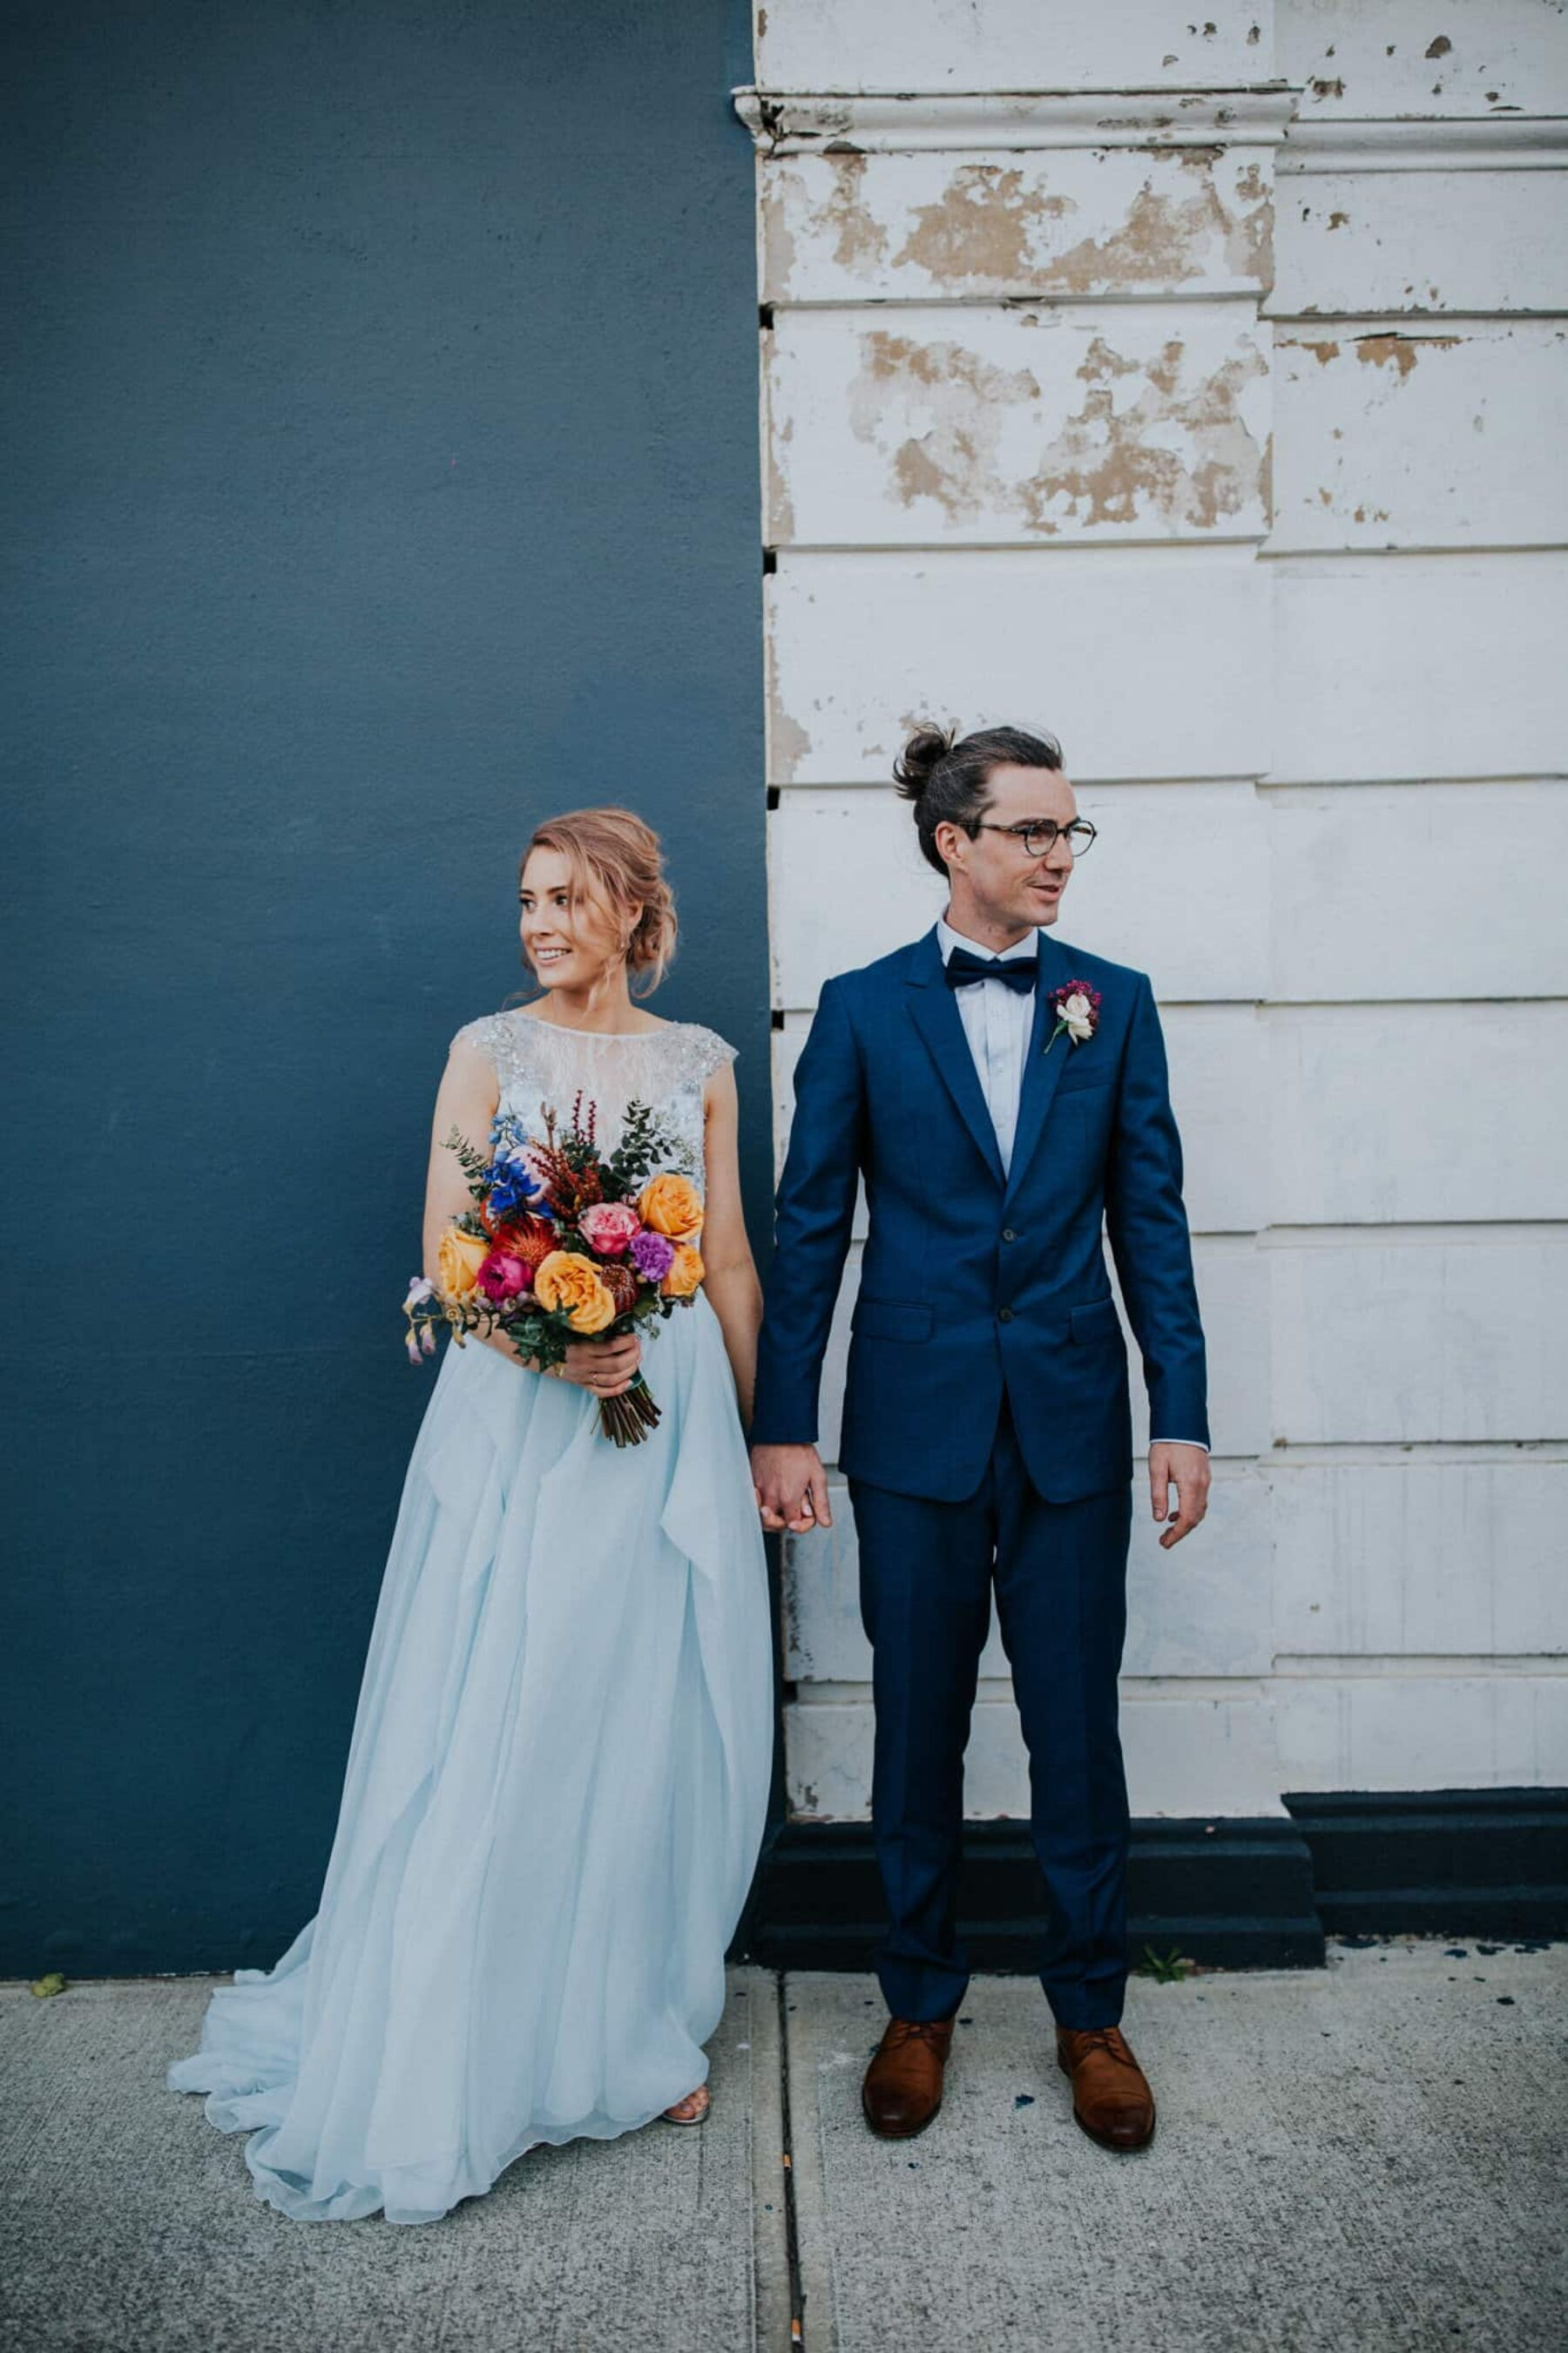 blush-haired bride with pale blue wedding dress